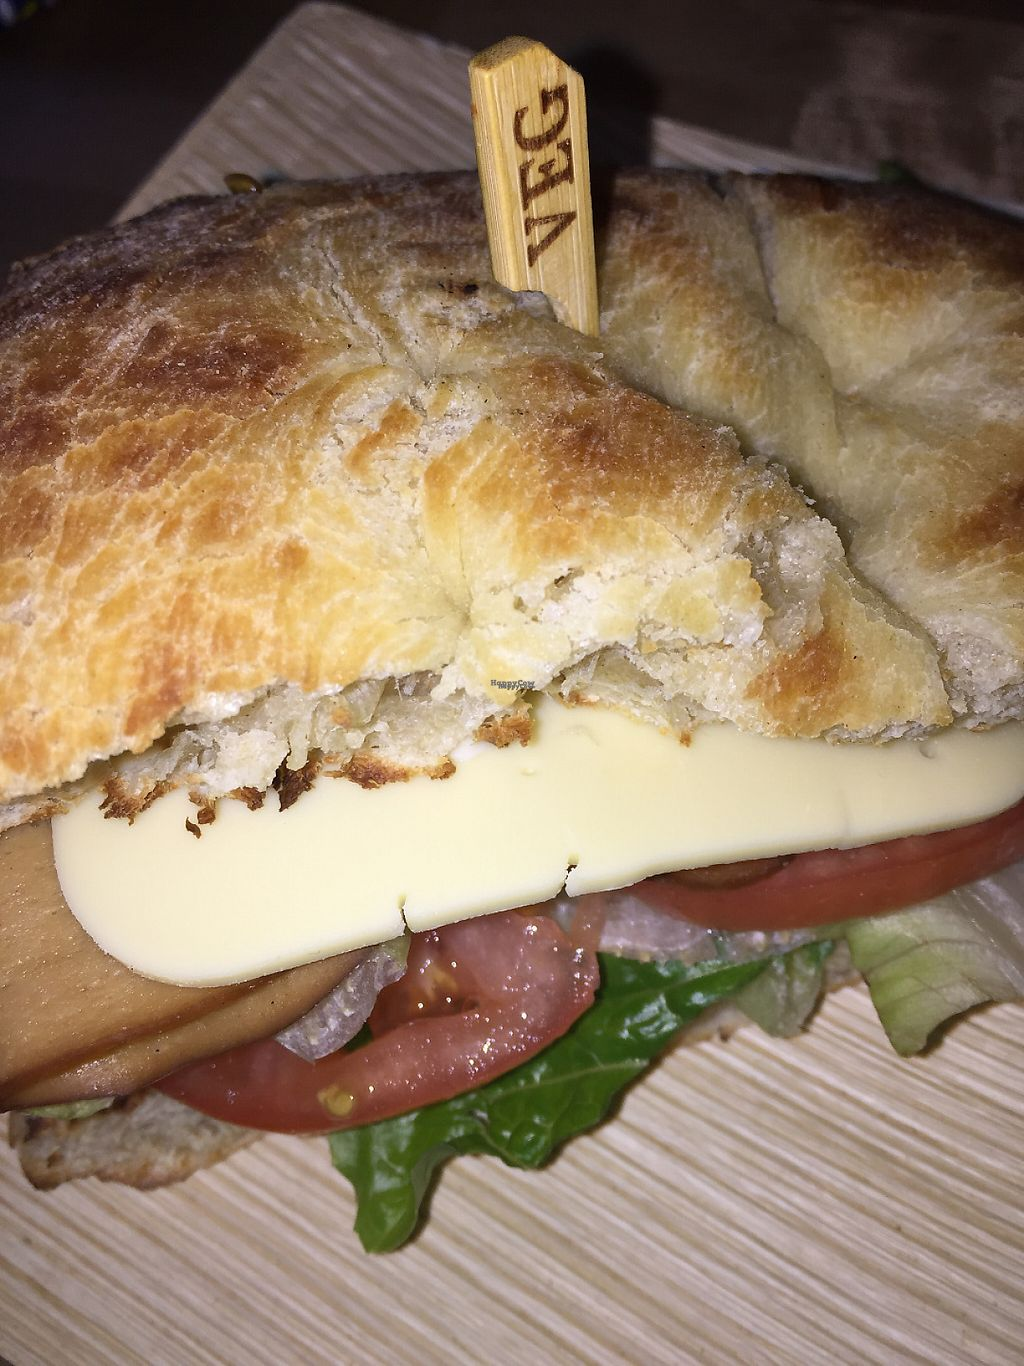 "Photo of Cafe Verve  by <a href=""/members/profile/PennsyltuckyVeggie"">PennsyltuckyVeggie</a> <br/>Chao Tofurky sandwich - my favorite! <br/> January 26, 2017  - <a href='/contact/abuse/image/83830/217186'>Report</a>"